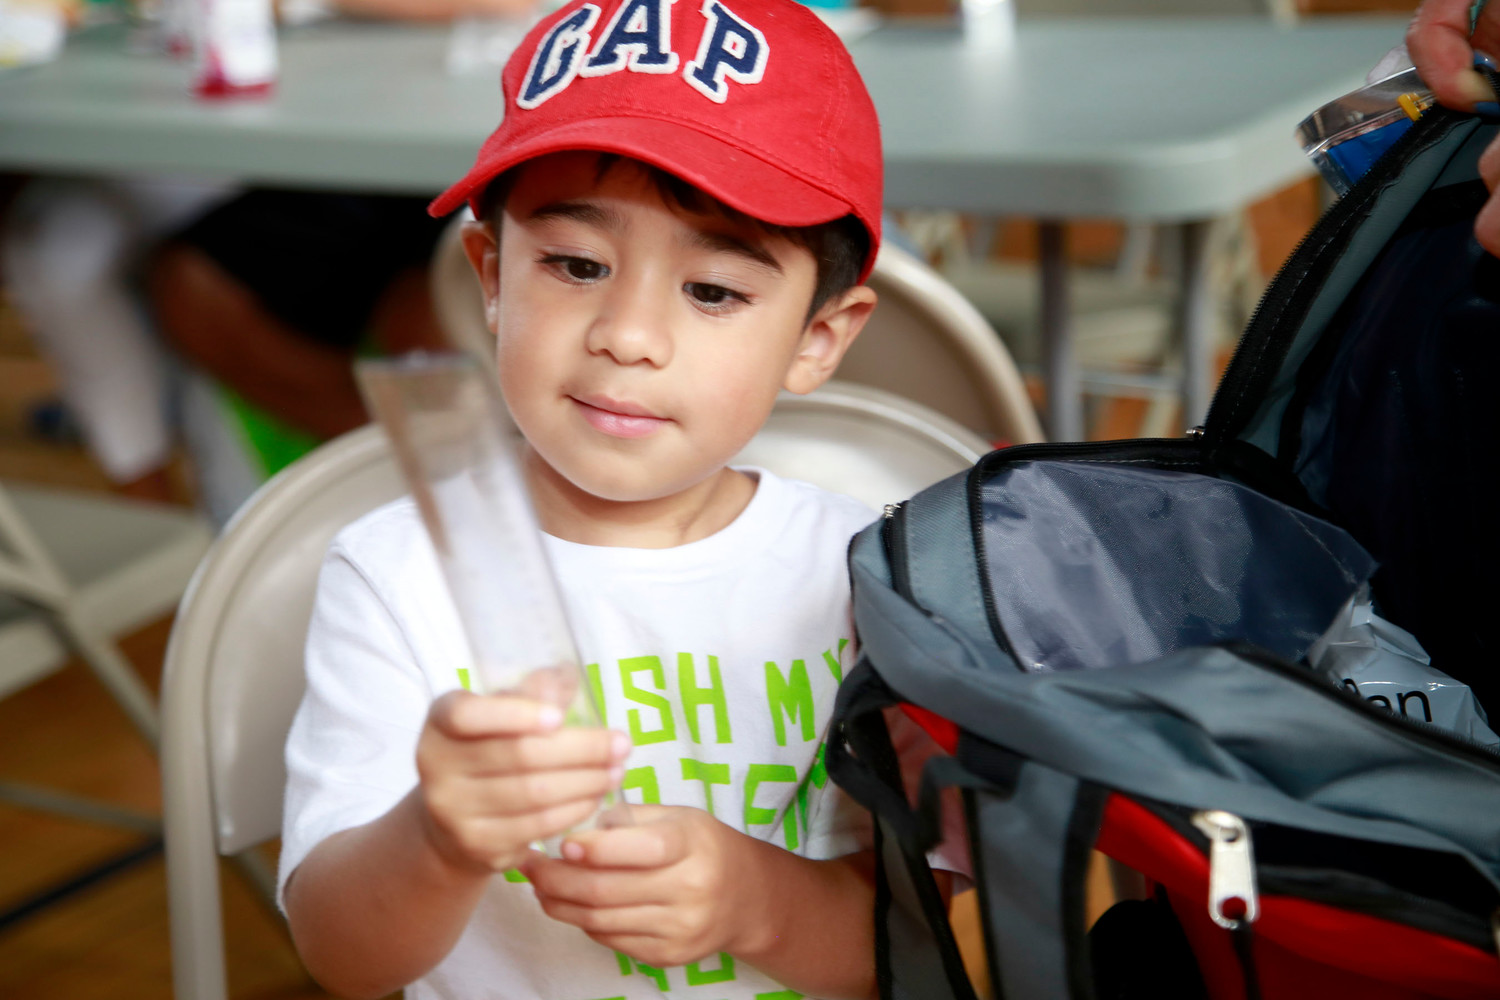 Jacob Martinez, 3, checked out the goodies in his new backpack.